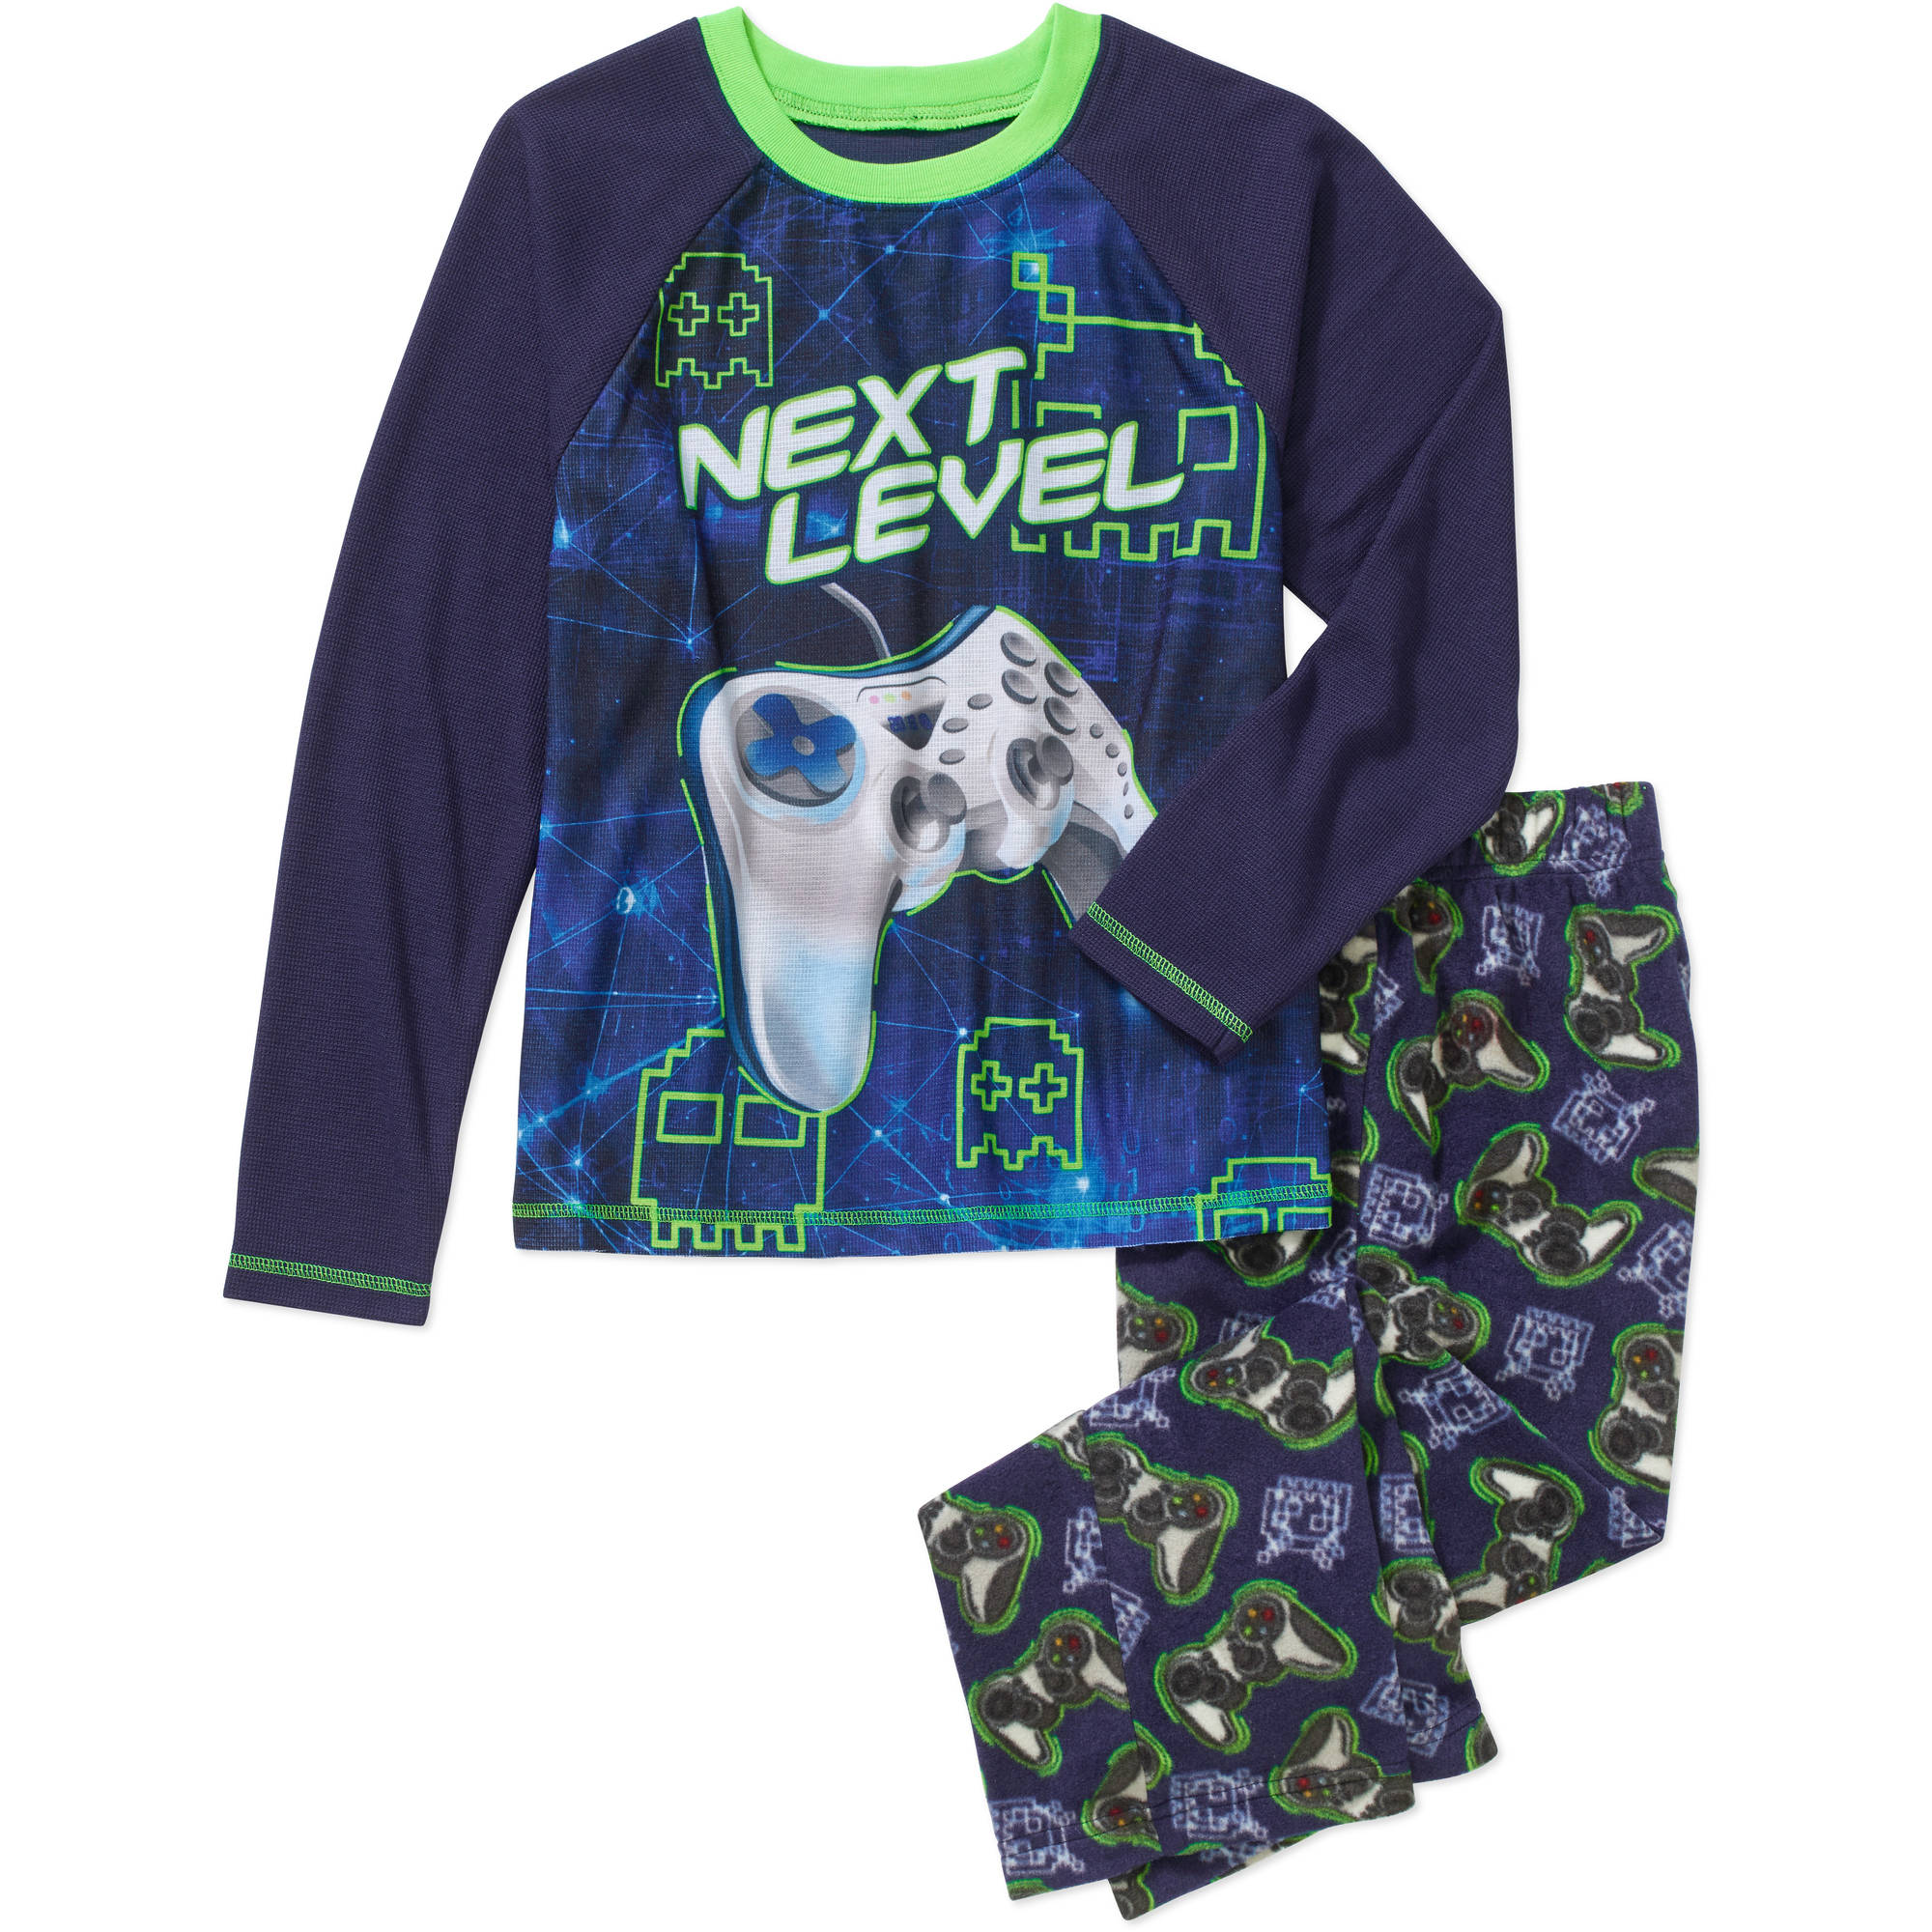 Faded Glory Boys' Thermal Top with Fleece Sleep Pants Pajama Set